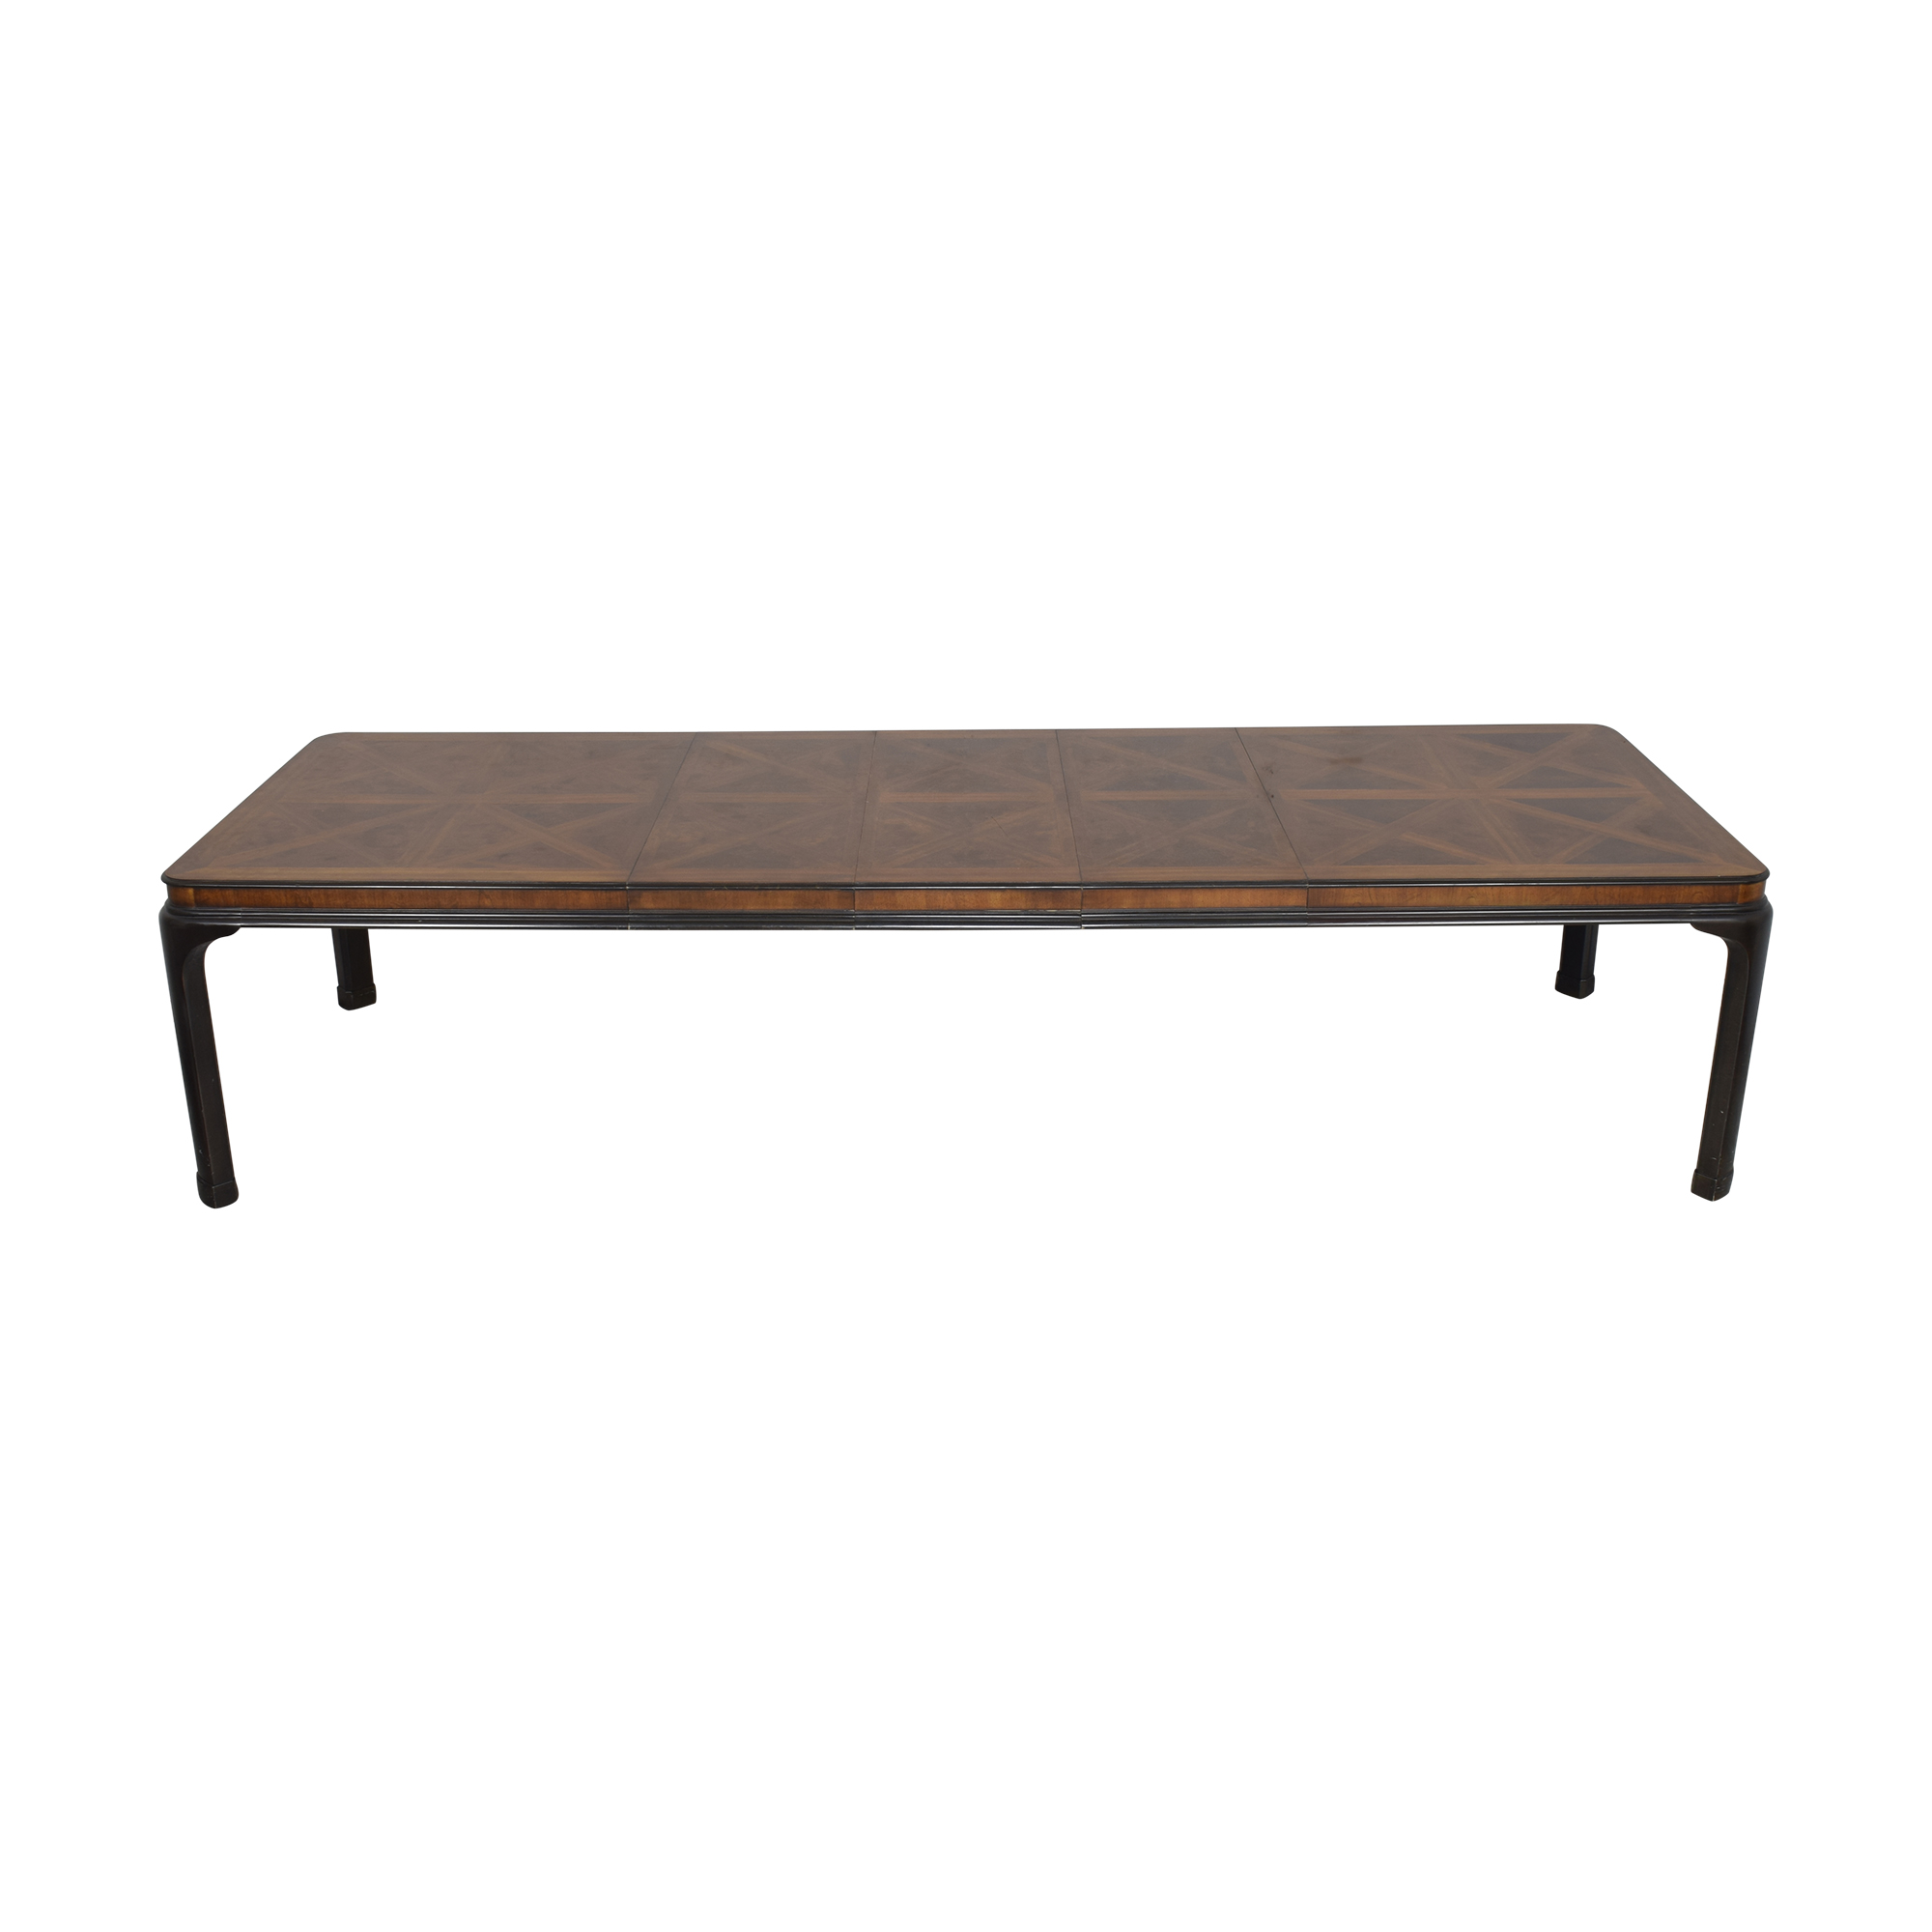 Drexel Heritage Drexel Heritage Connoisseur Dining Table pa